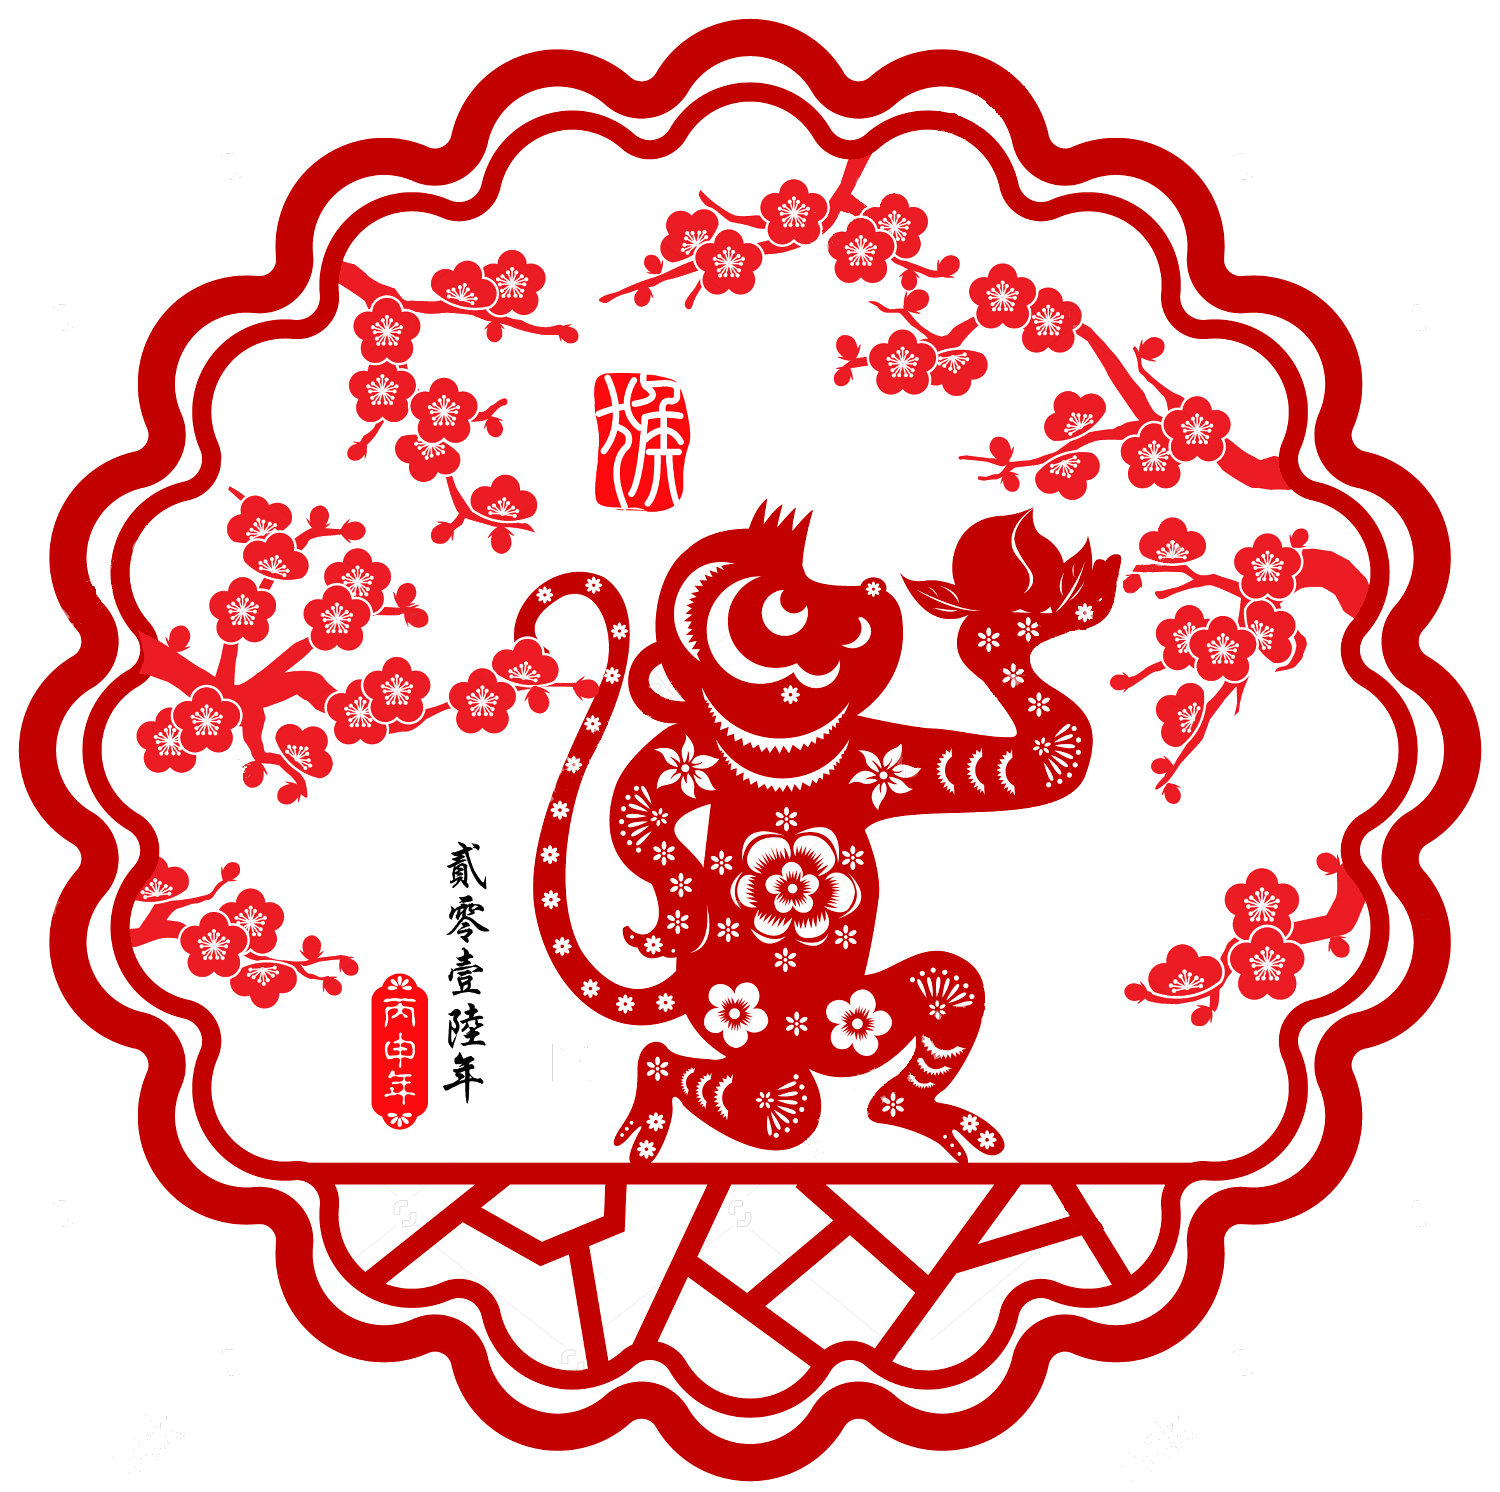 Us china peoples friendship association february 2016 welcome the year of the monkey with uscpfa lunar new year 2016 kristyandbryce Choice Image